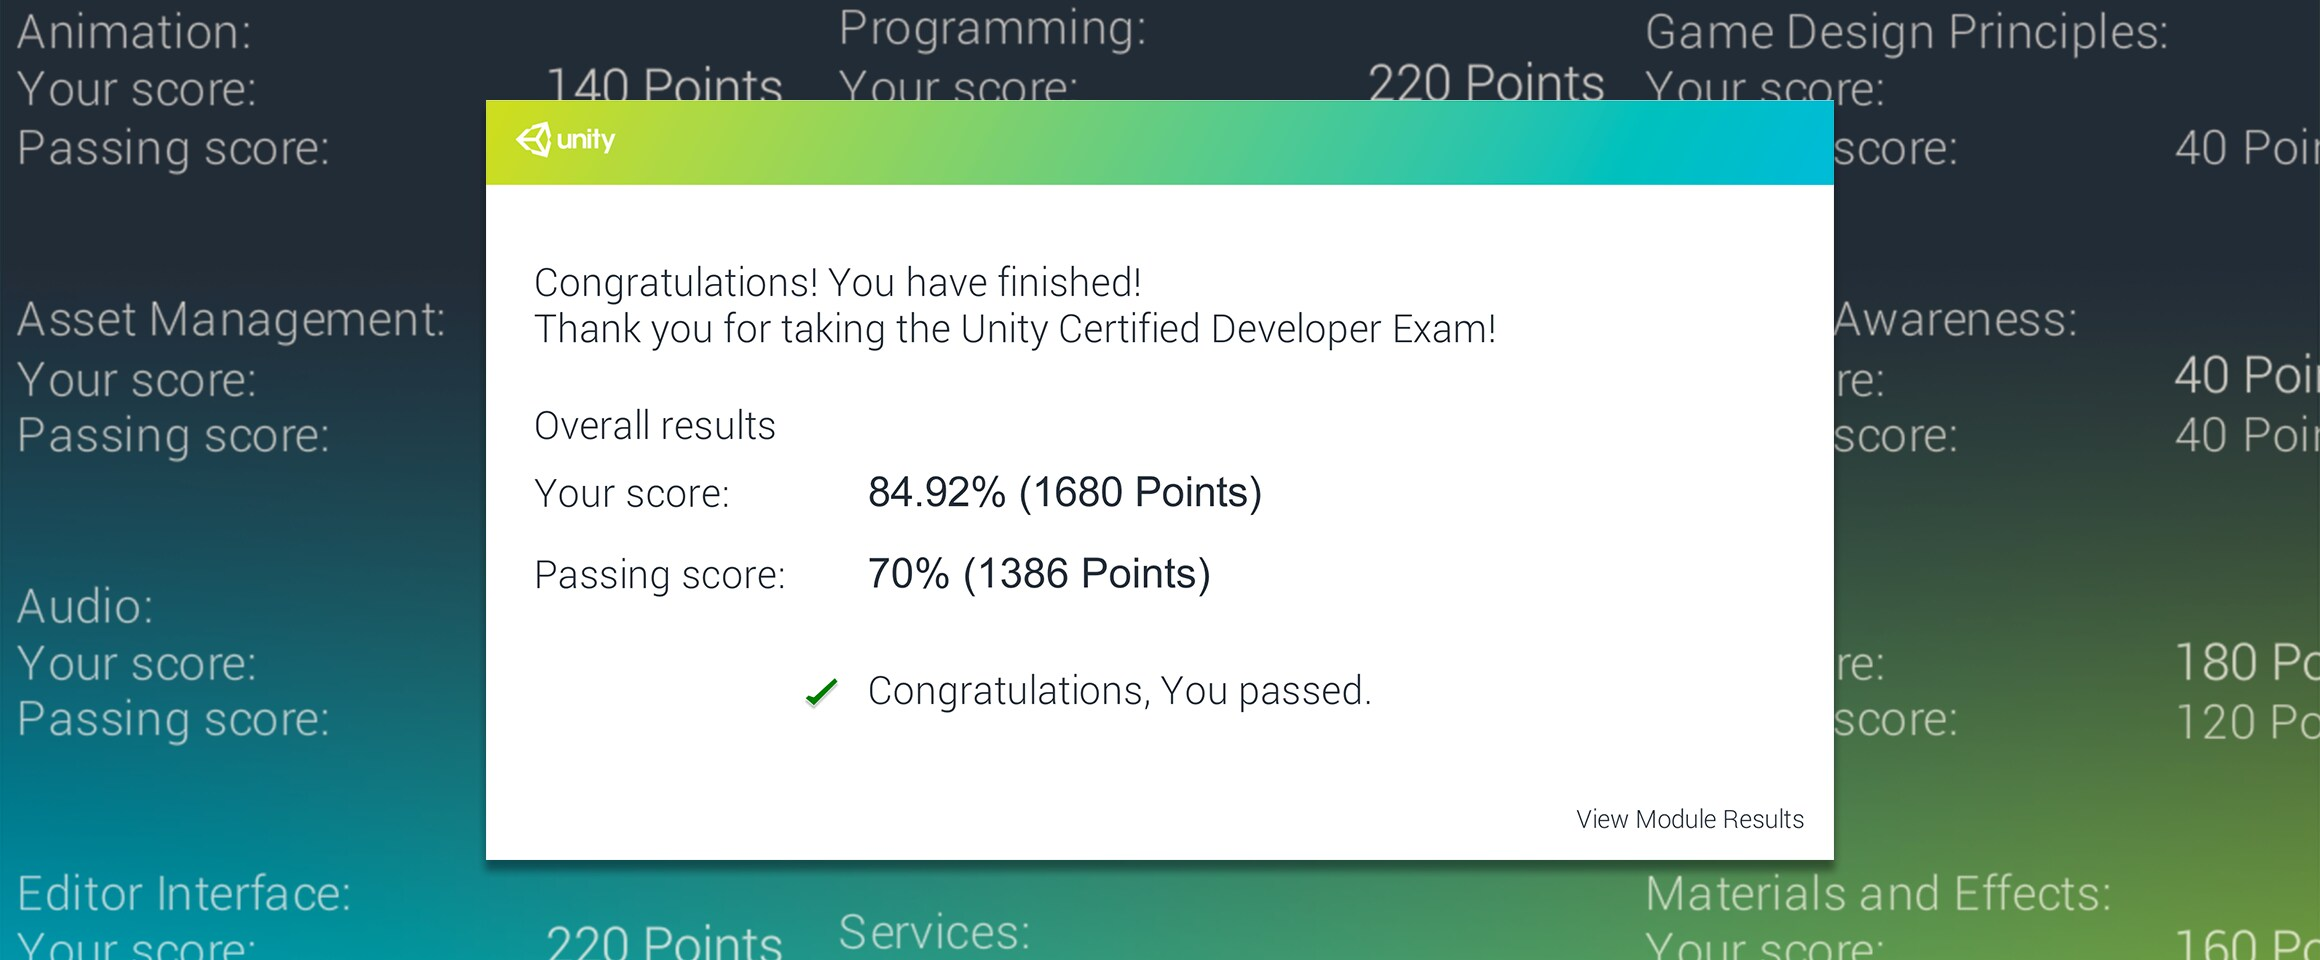 Unity Certification Exam Results